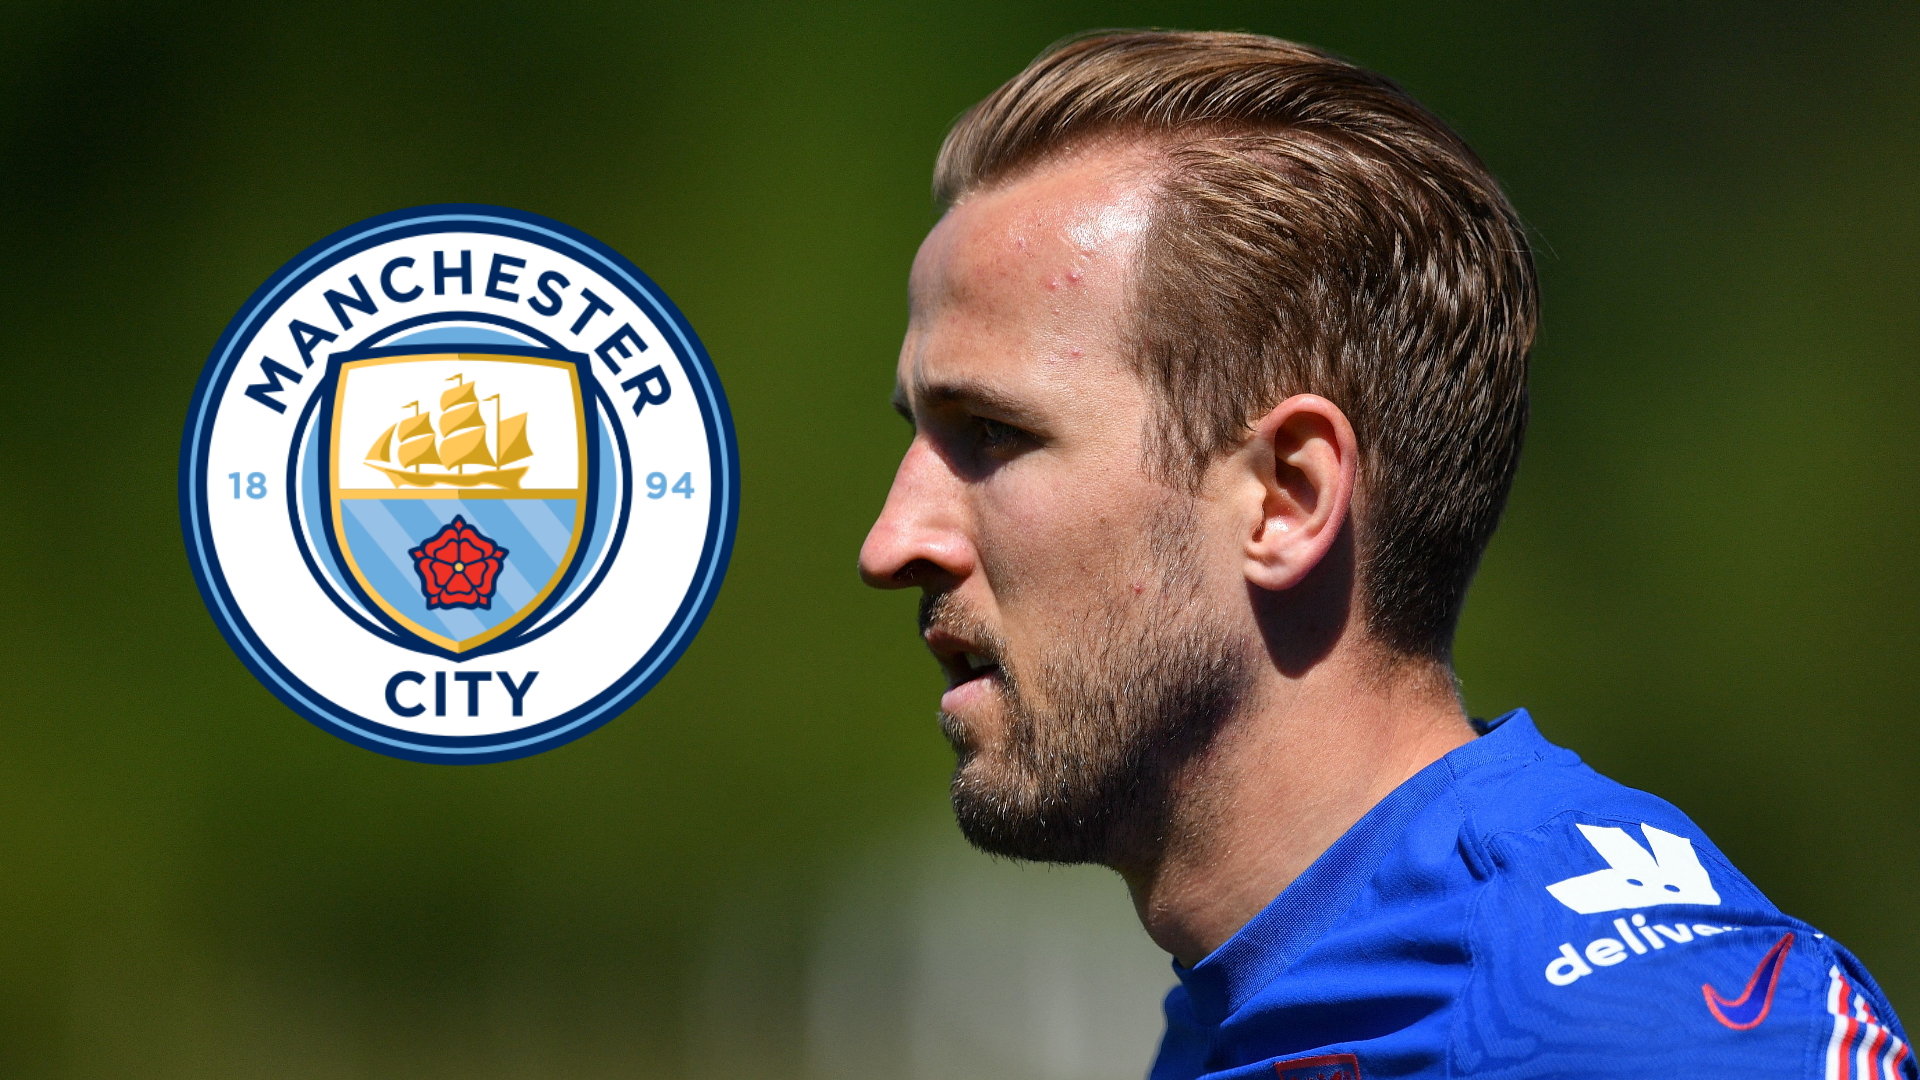 Transfer news and rumours LIVE: Manchester City ready to pay £127m for Kane